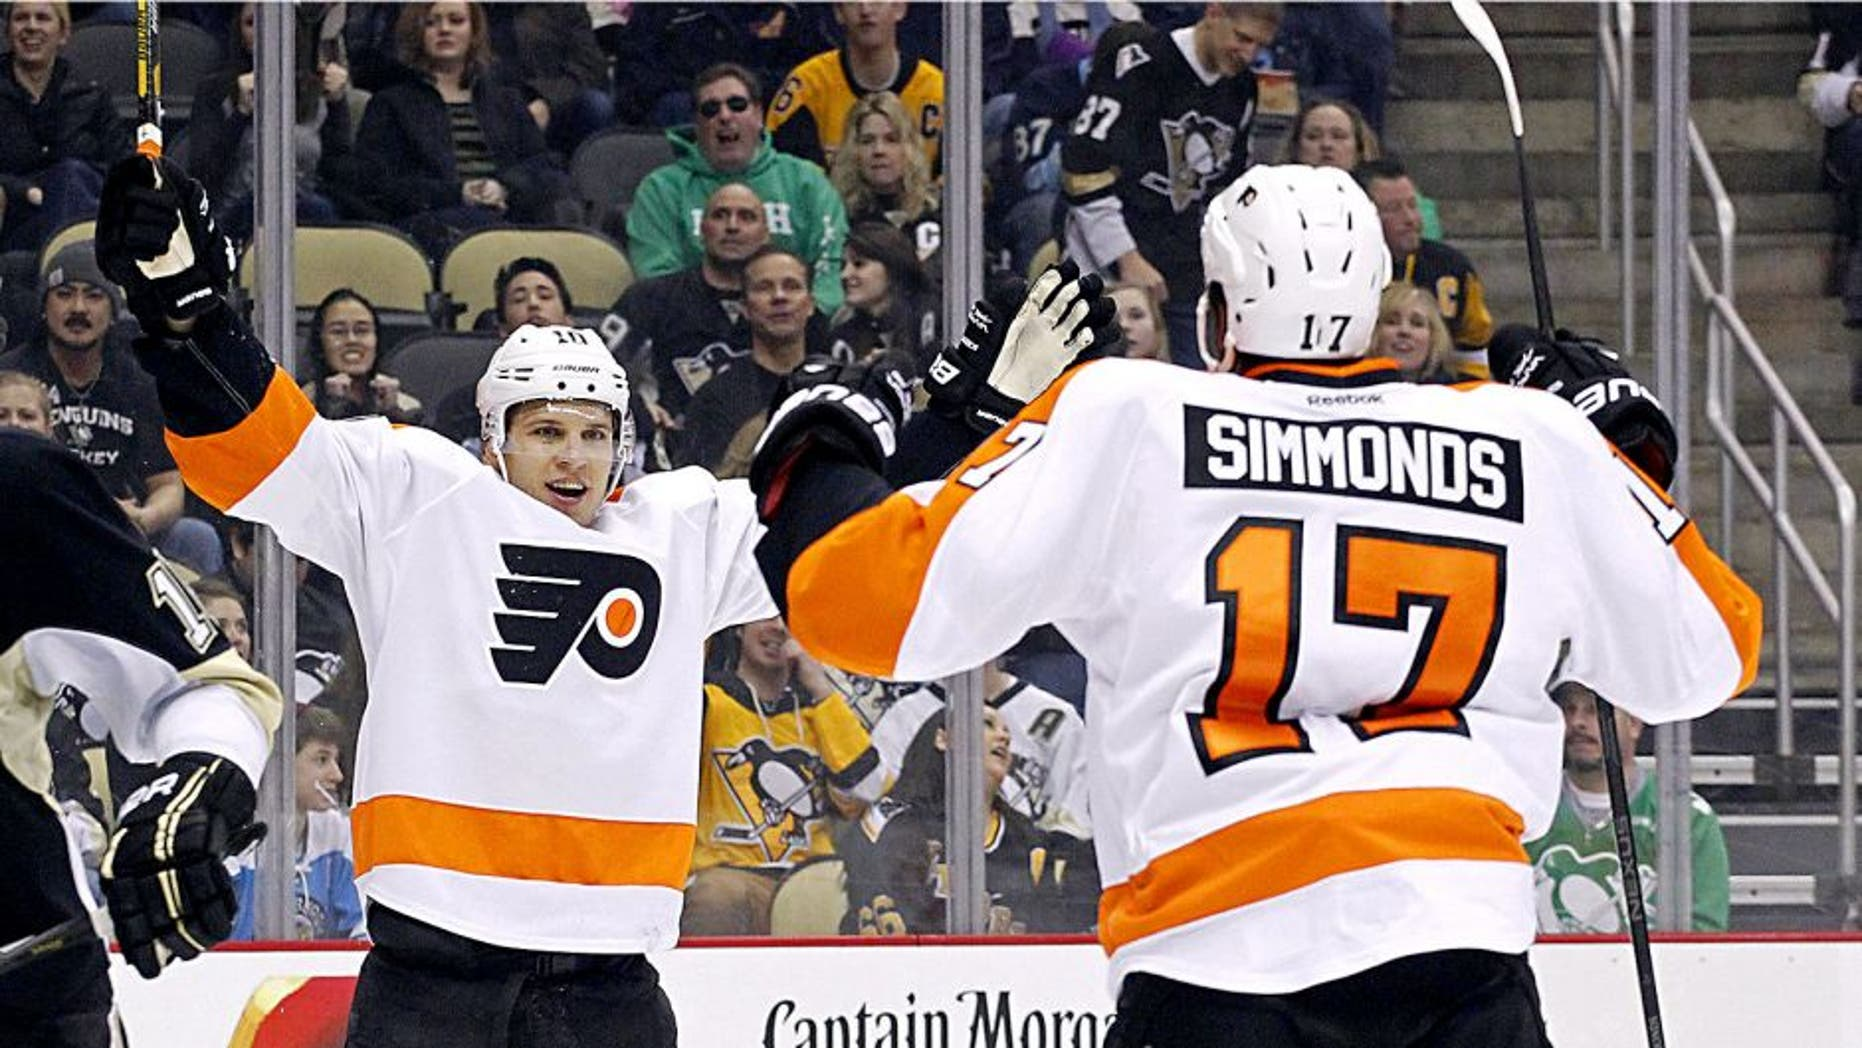 Mar 16, 2014; Pittsburgh, PA, USA; Philadelphia Flyers center Brayden Schenn (left) celebrates with right wing Wayne Simmonds (17) after Schenn scored a goal against the Pittsburgh Penguins during the first period at the CONSOL Energy Center. Mandatory Credit: Charles LeClaire-USA TODAY Sports